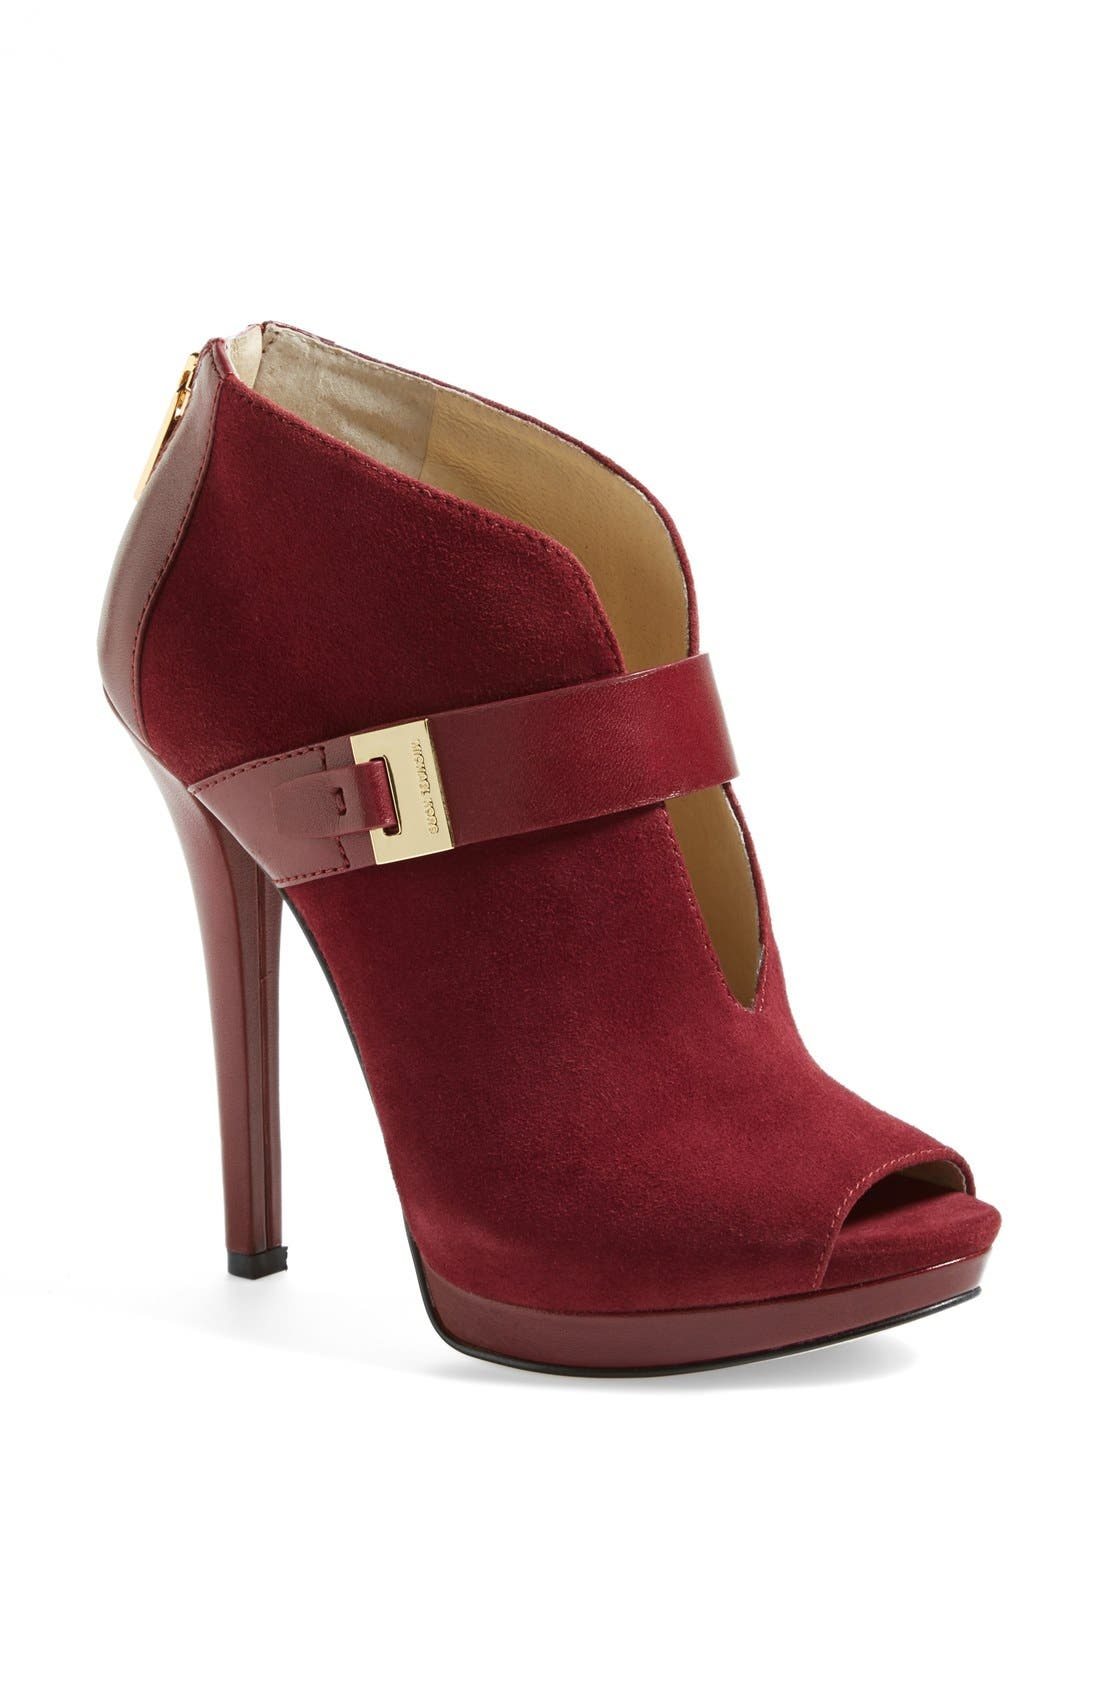 Main Image - MICHAEL Michael Kors 'Guiliana' Peep Toe Bootie (Women)